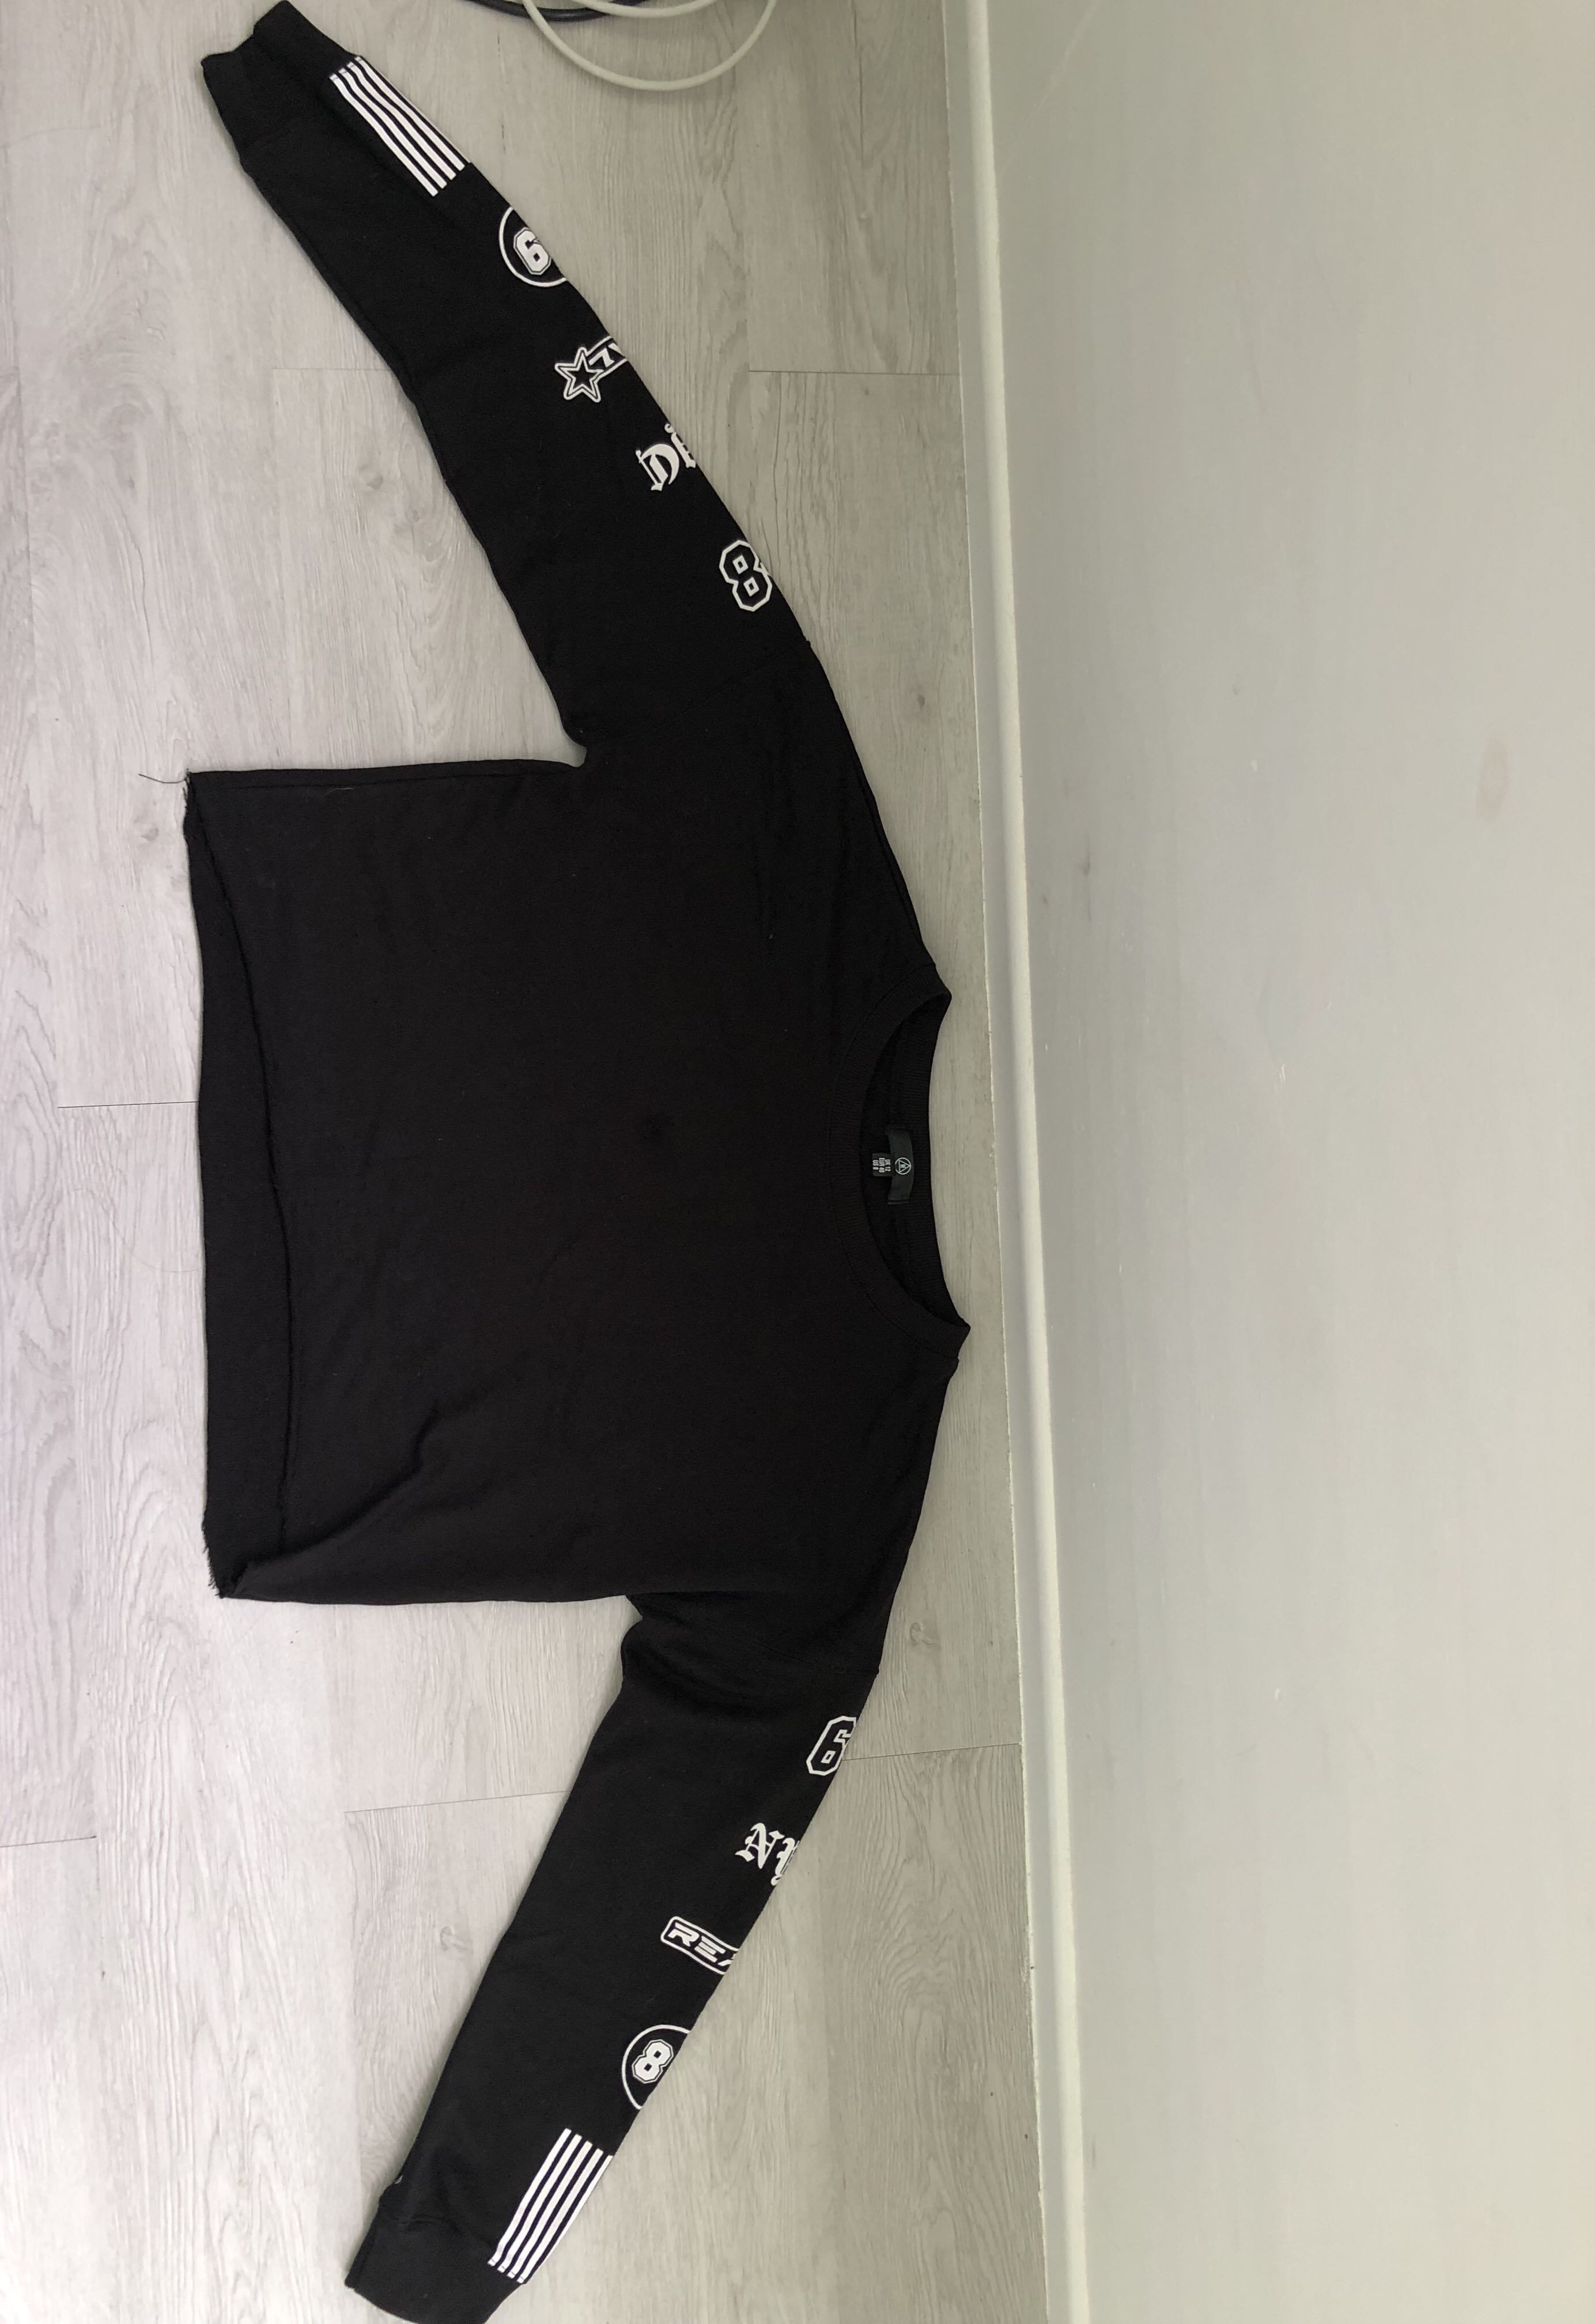 Misguided Cropped Jumper